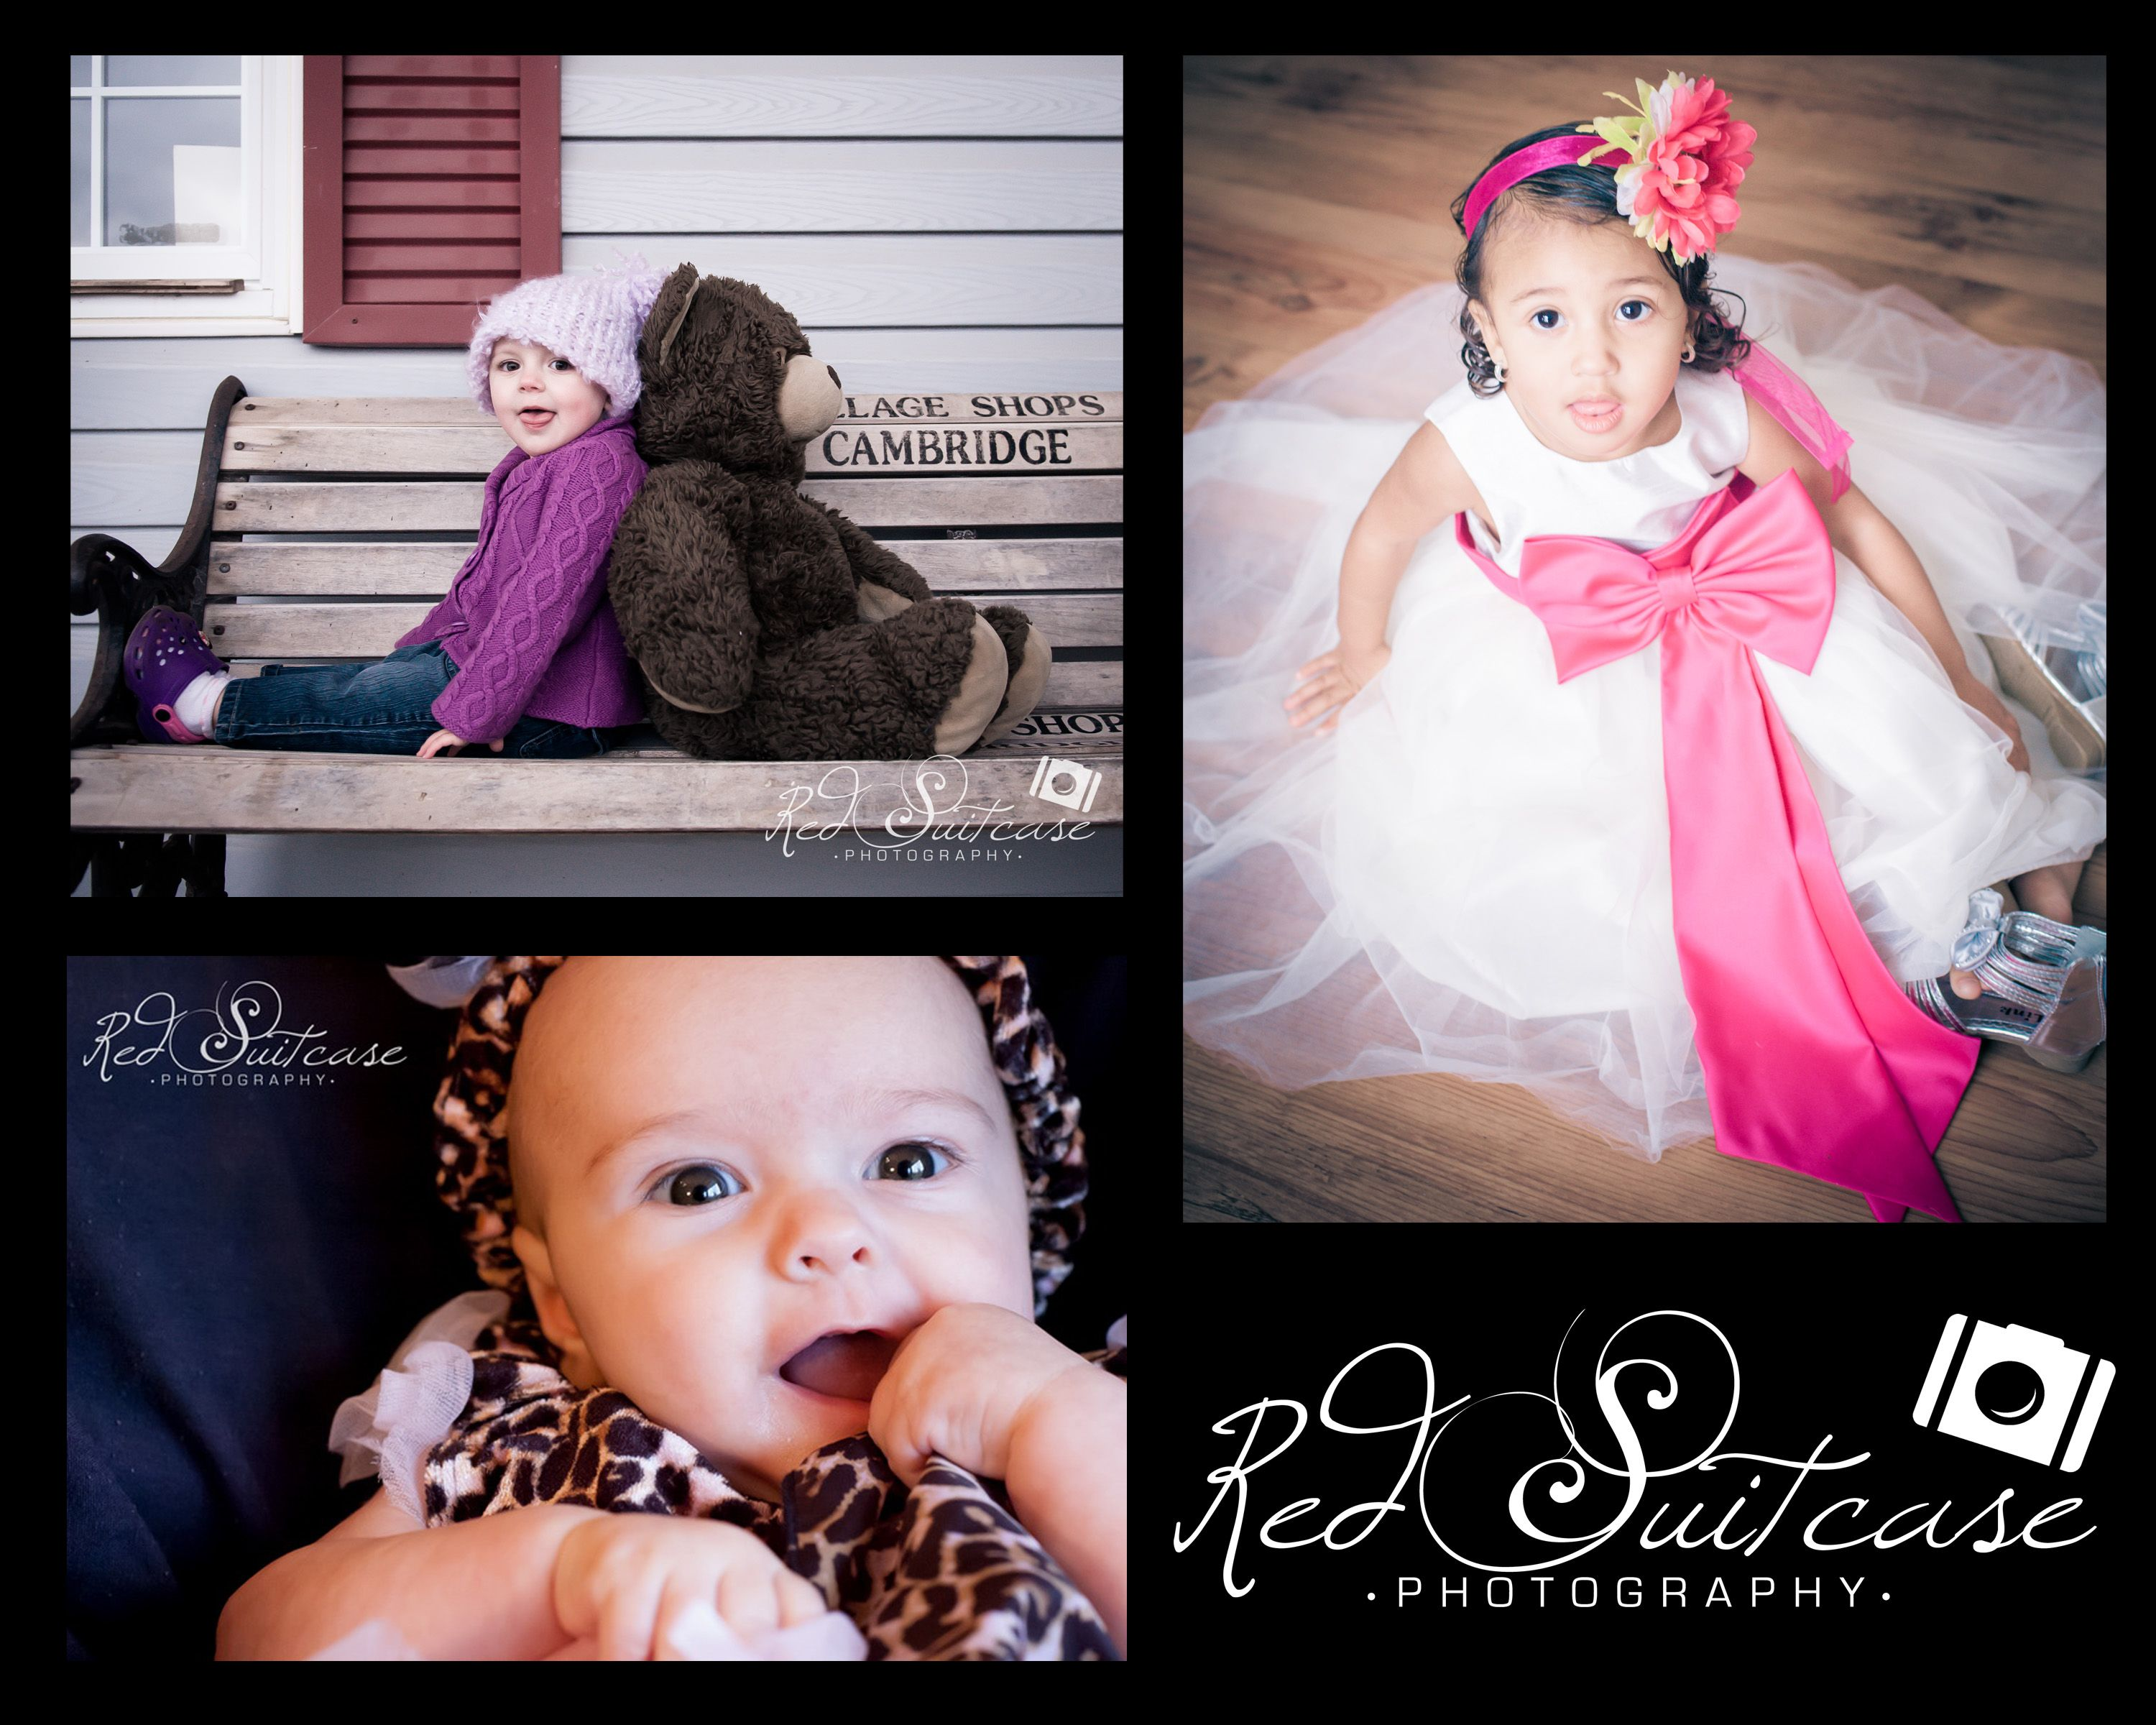 Beautiful children red suitcase photography dog paw